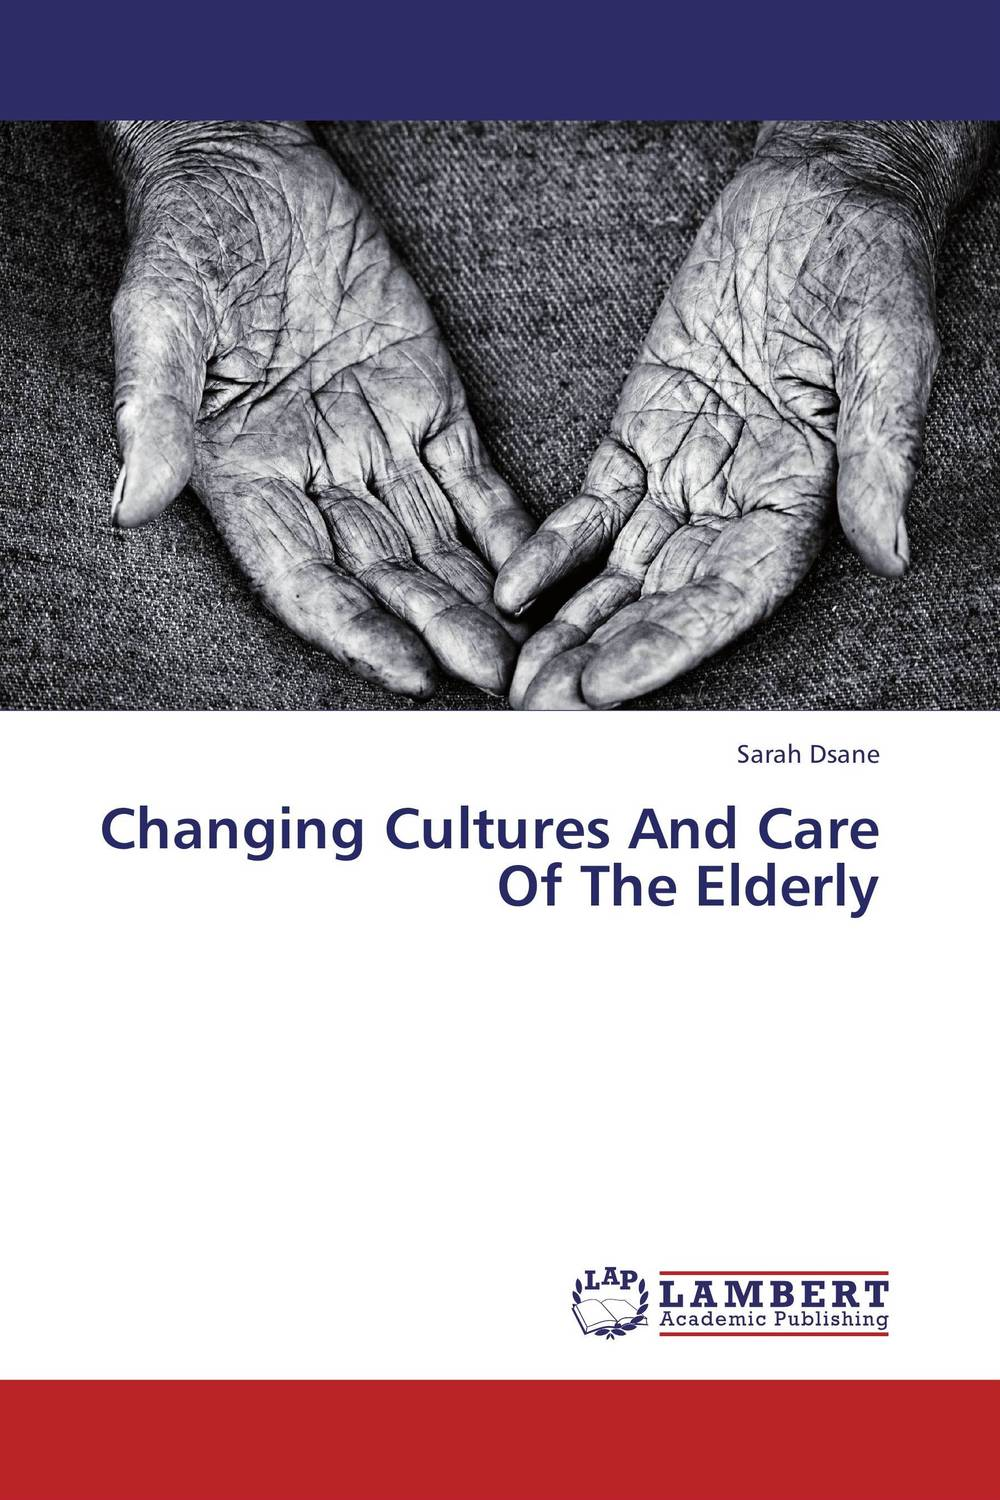 цены Changing Cultures And Care Of The Elderly